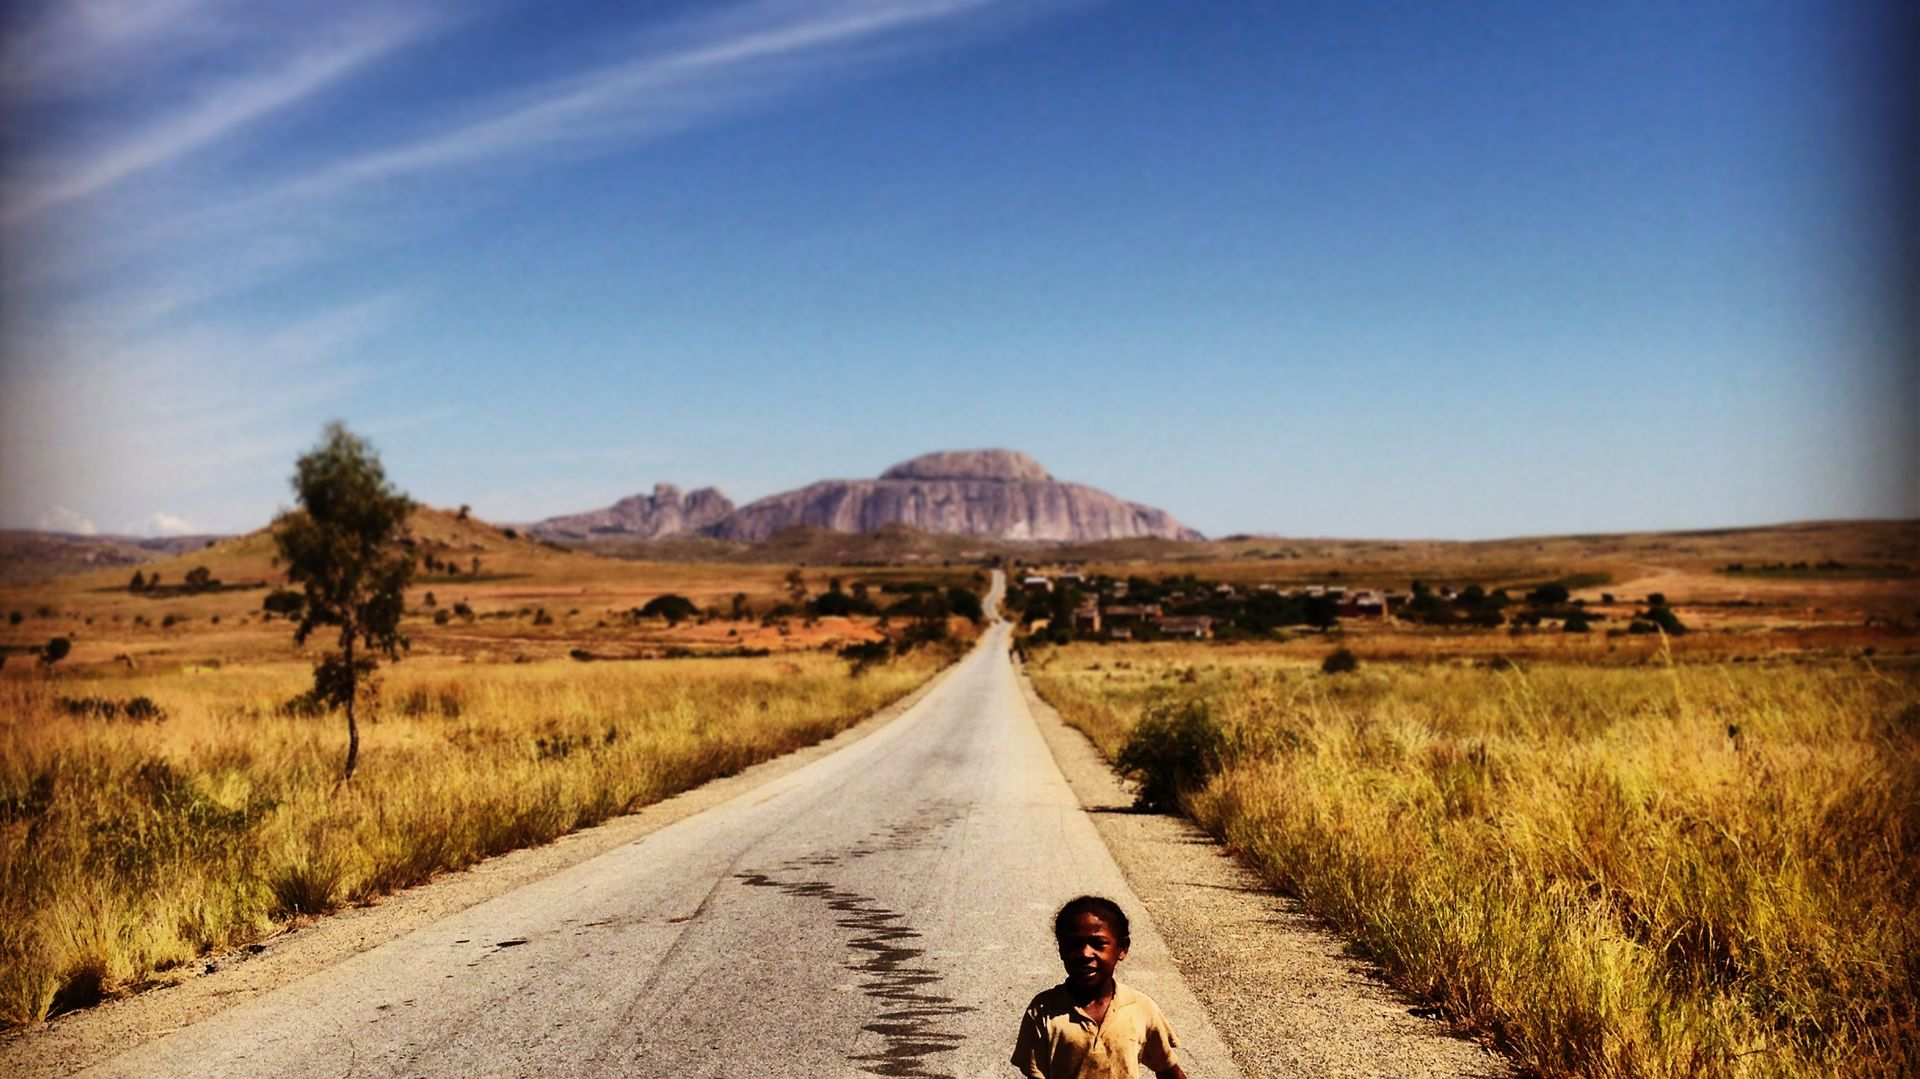 Fly & Drive route 66 Madagascar - Matoke Tours